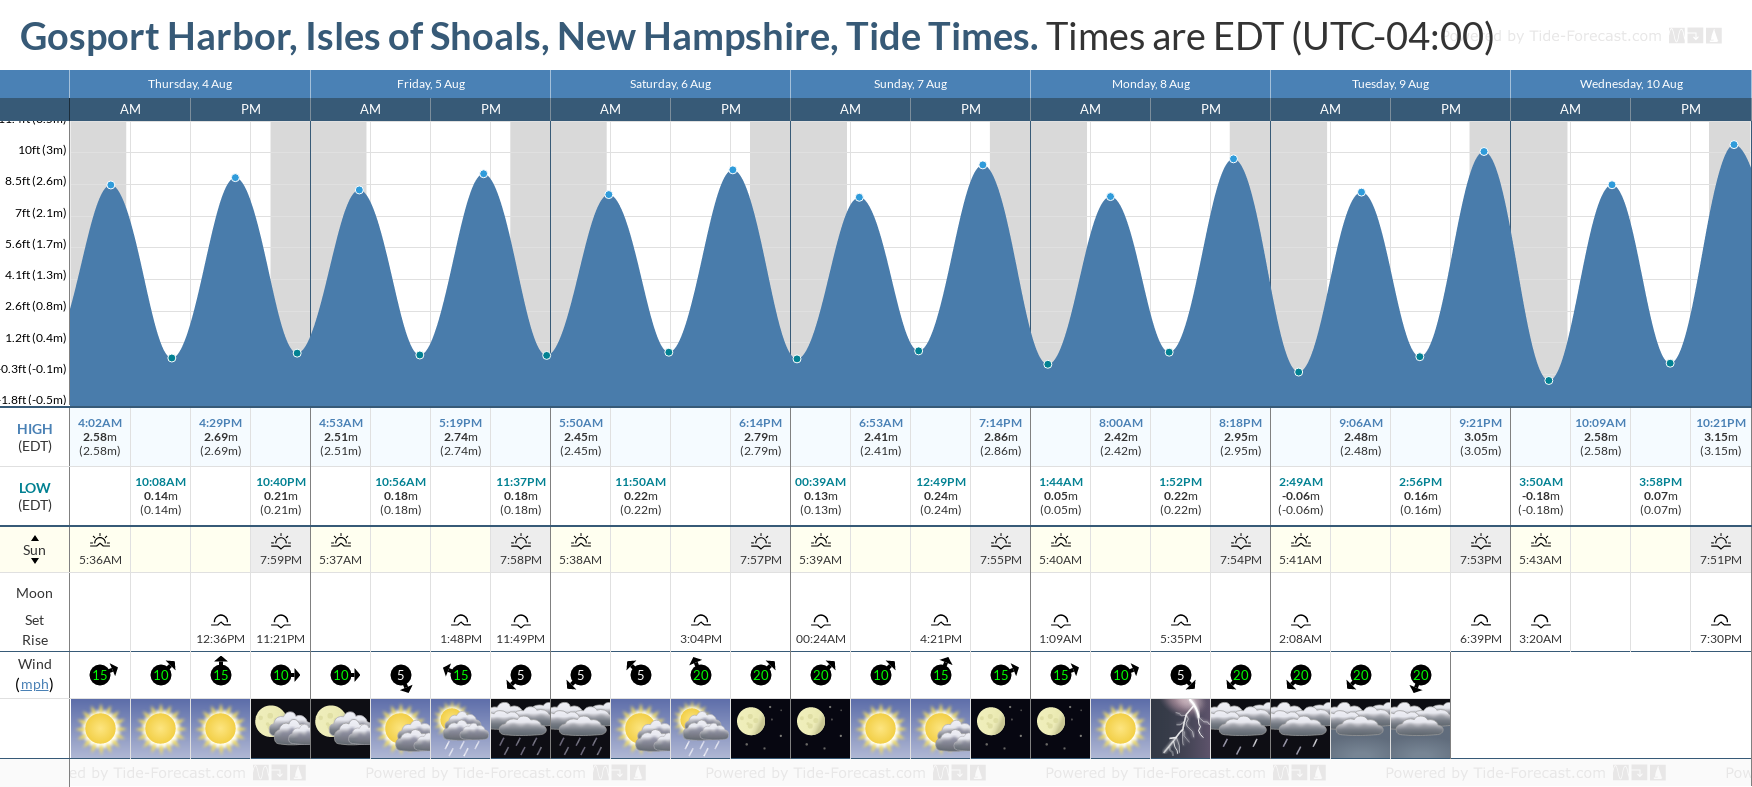 Gosport Harbor, Isles of Shoals, New Hampshire Tide Chart including high and low tide tide times for the next 7 days